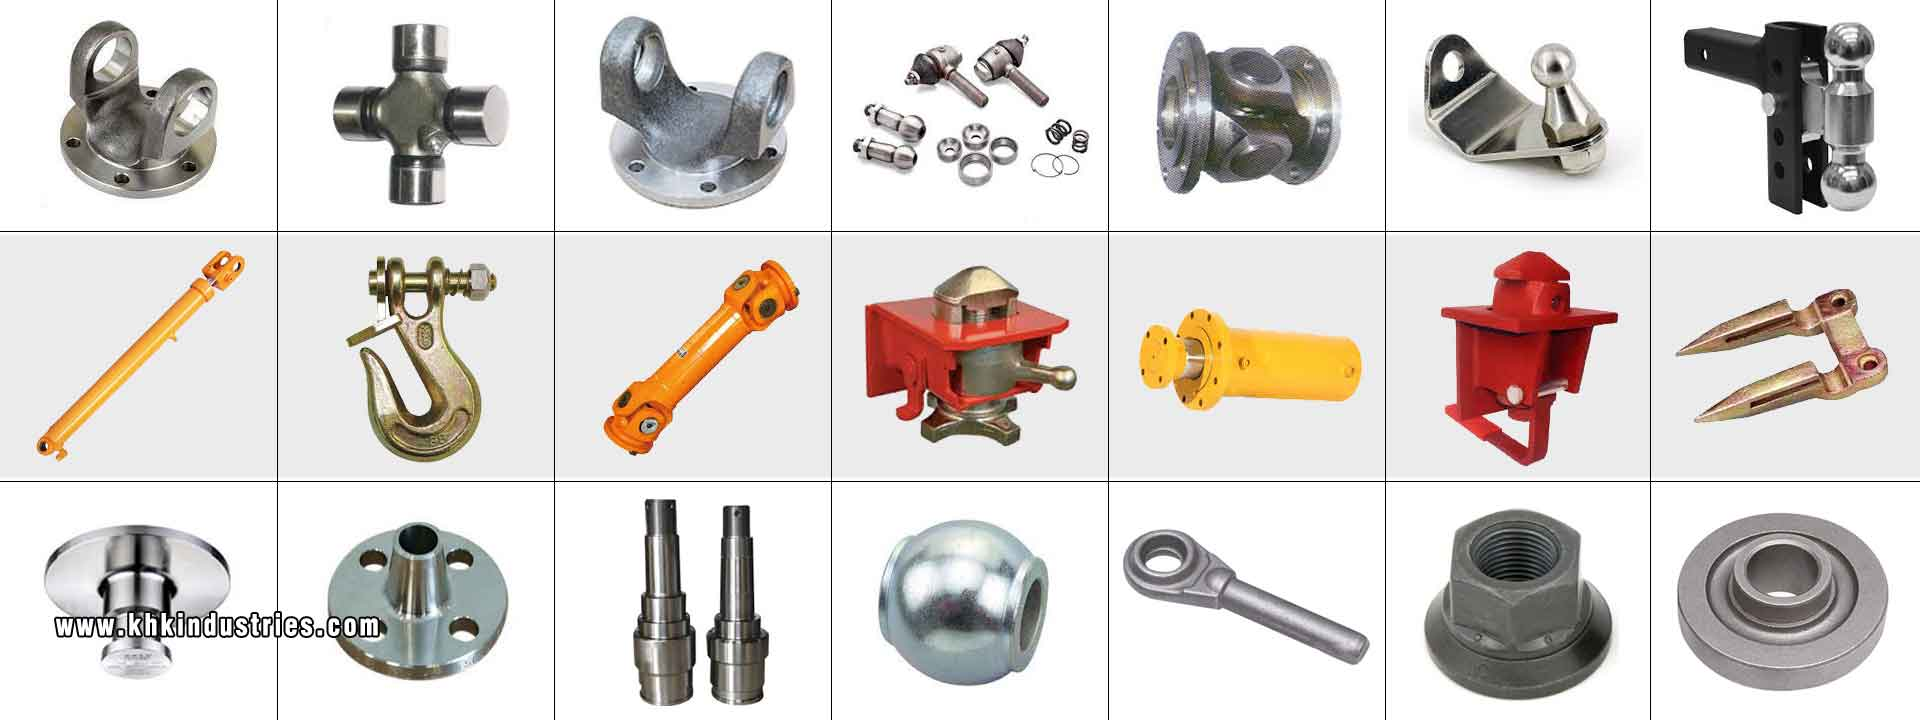 Forging Parts Forged Automobile Parts CNC Turned Components manuafacturers exporters India punjab ludhiana